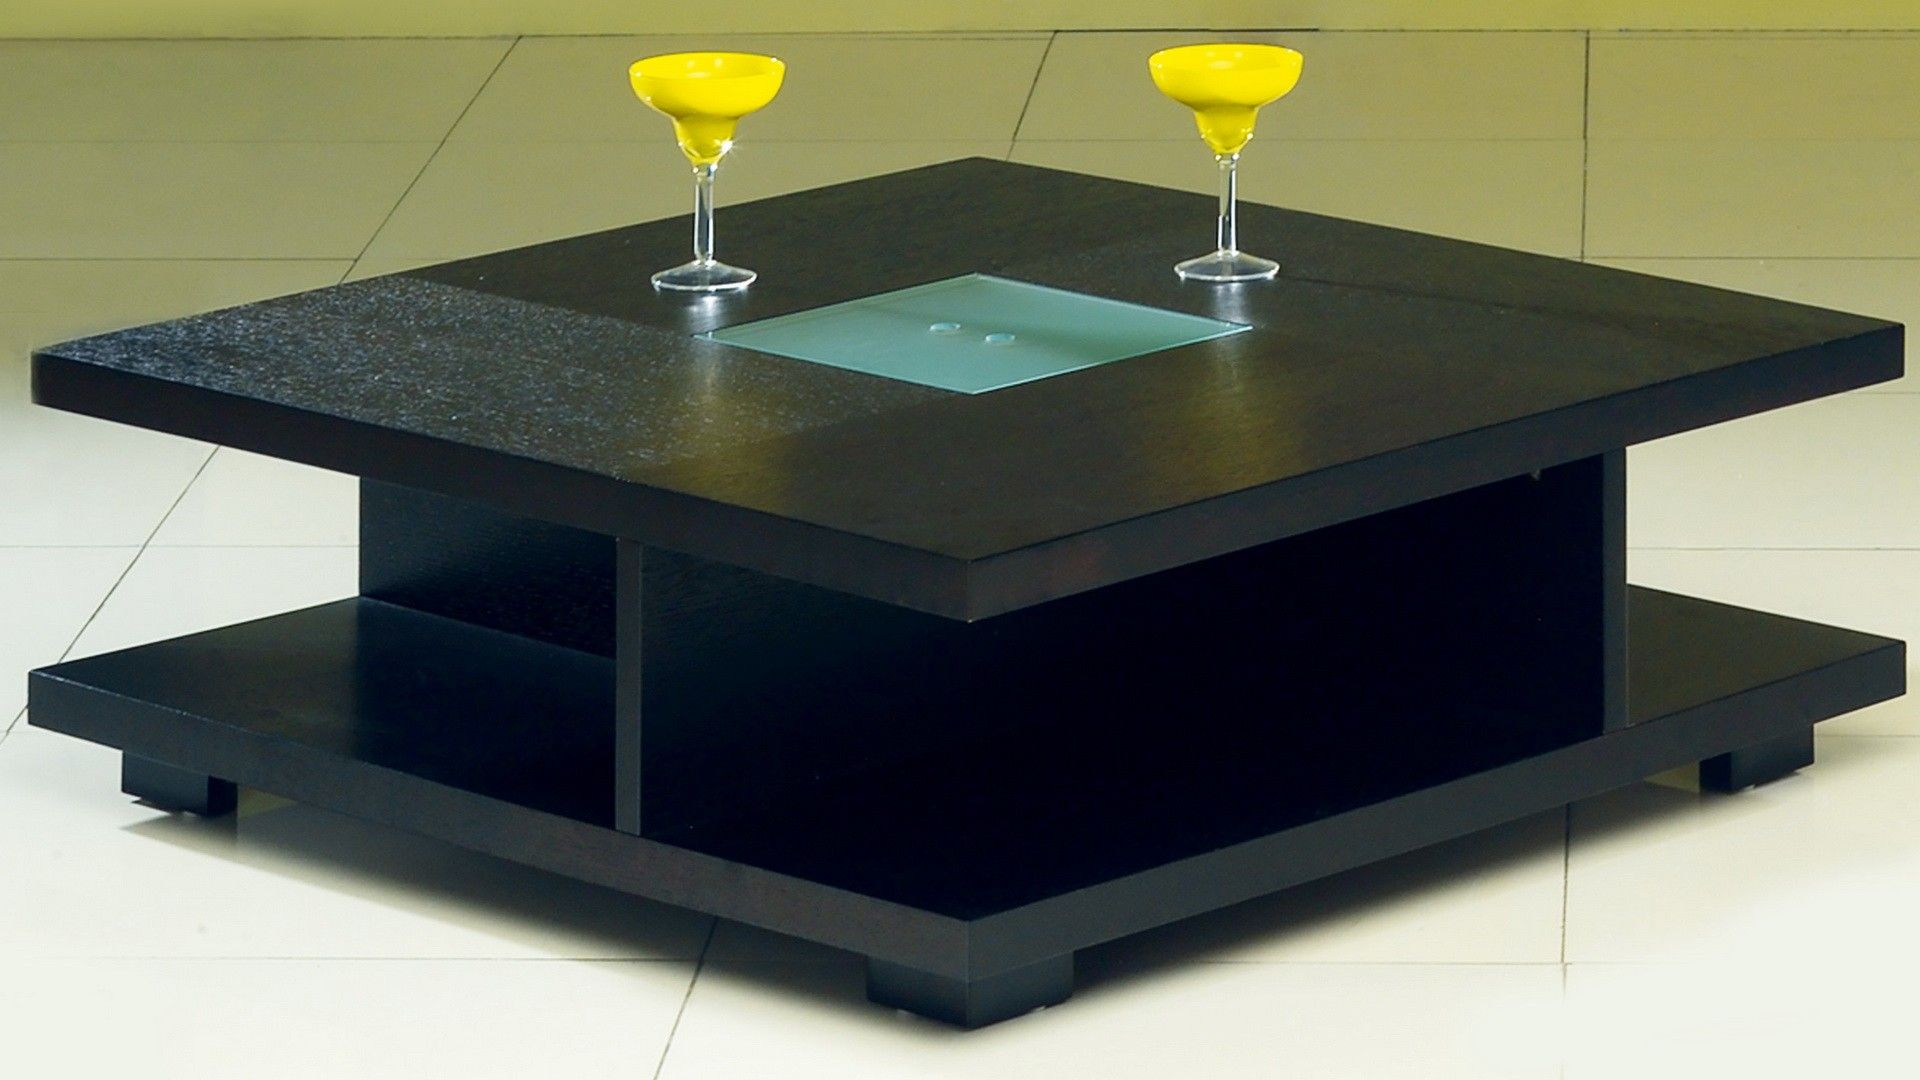 AtHome C5263 Coffee Table Square coffee table Glass top black